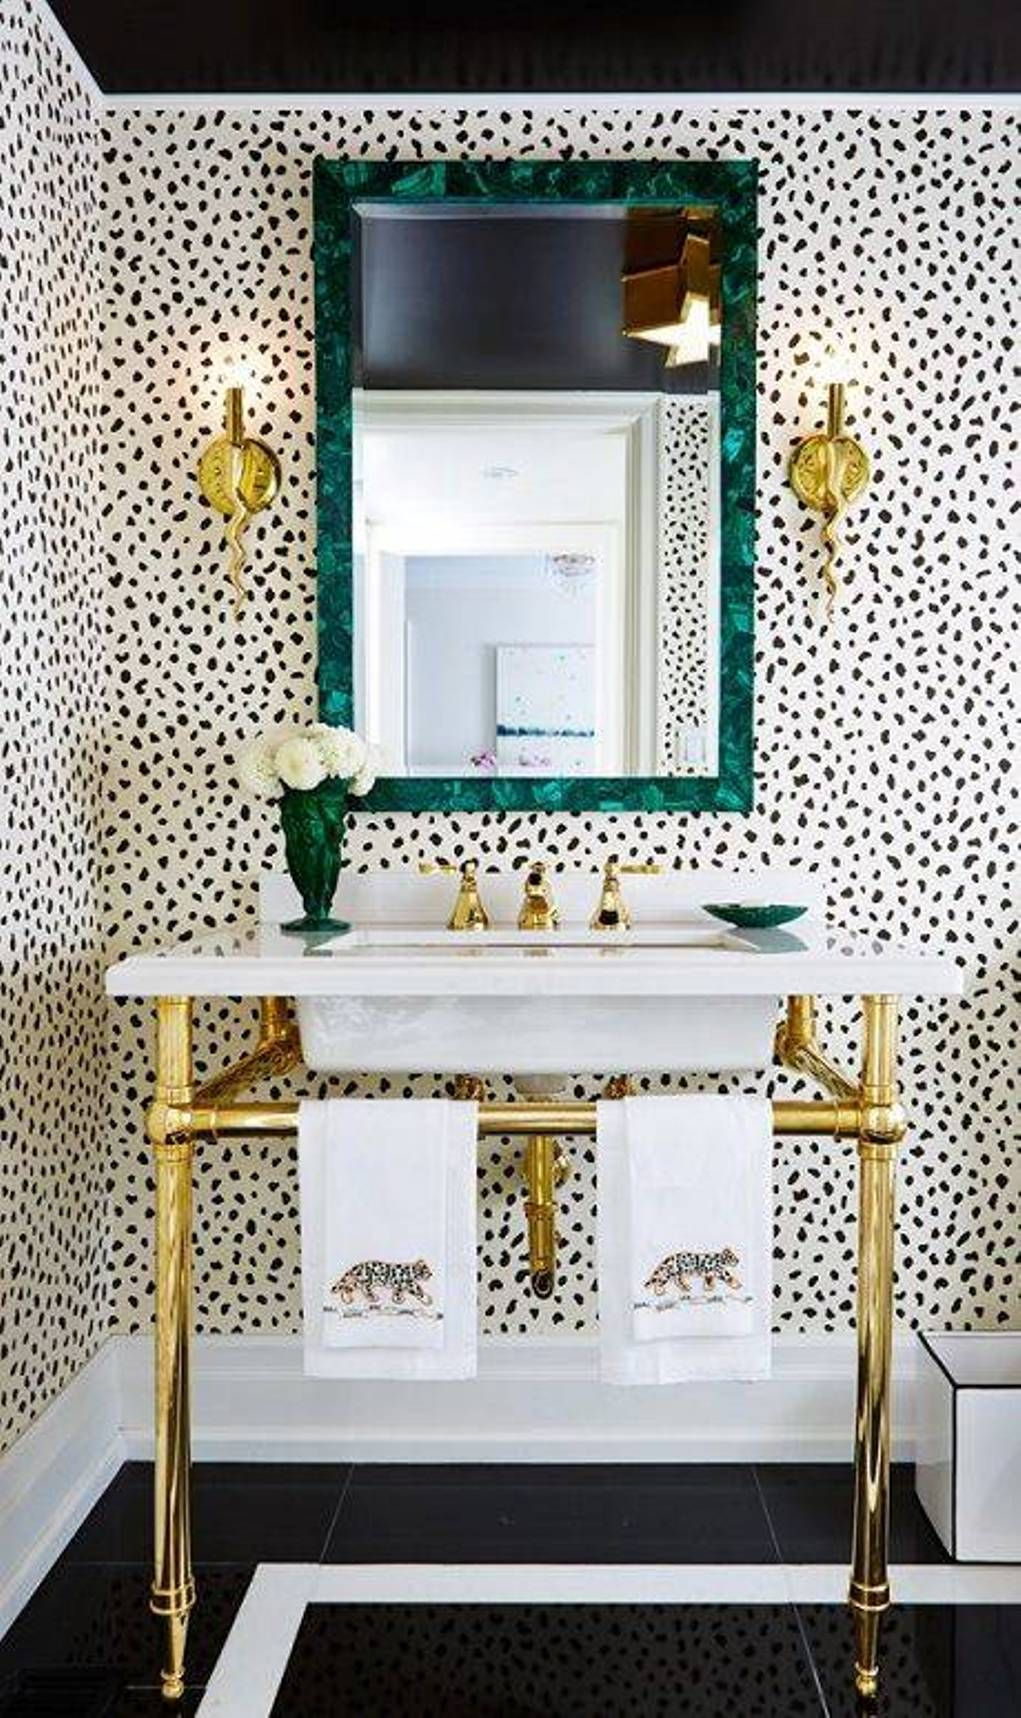 Wall Sconces And Vintage Pedestal Sink With Towel Bar Small